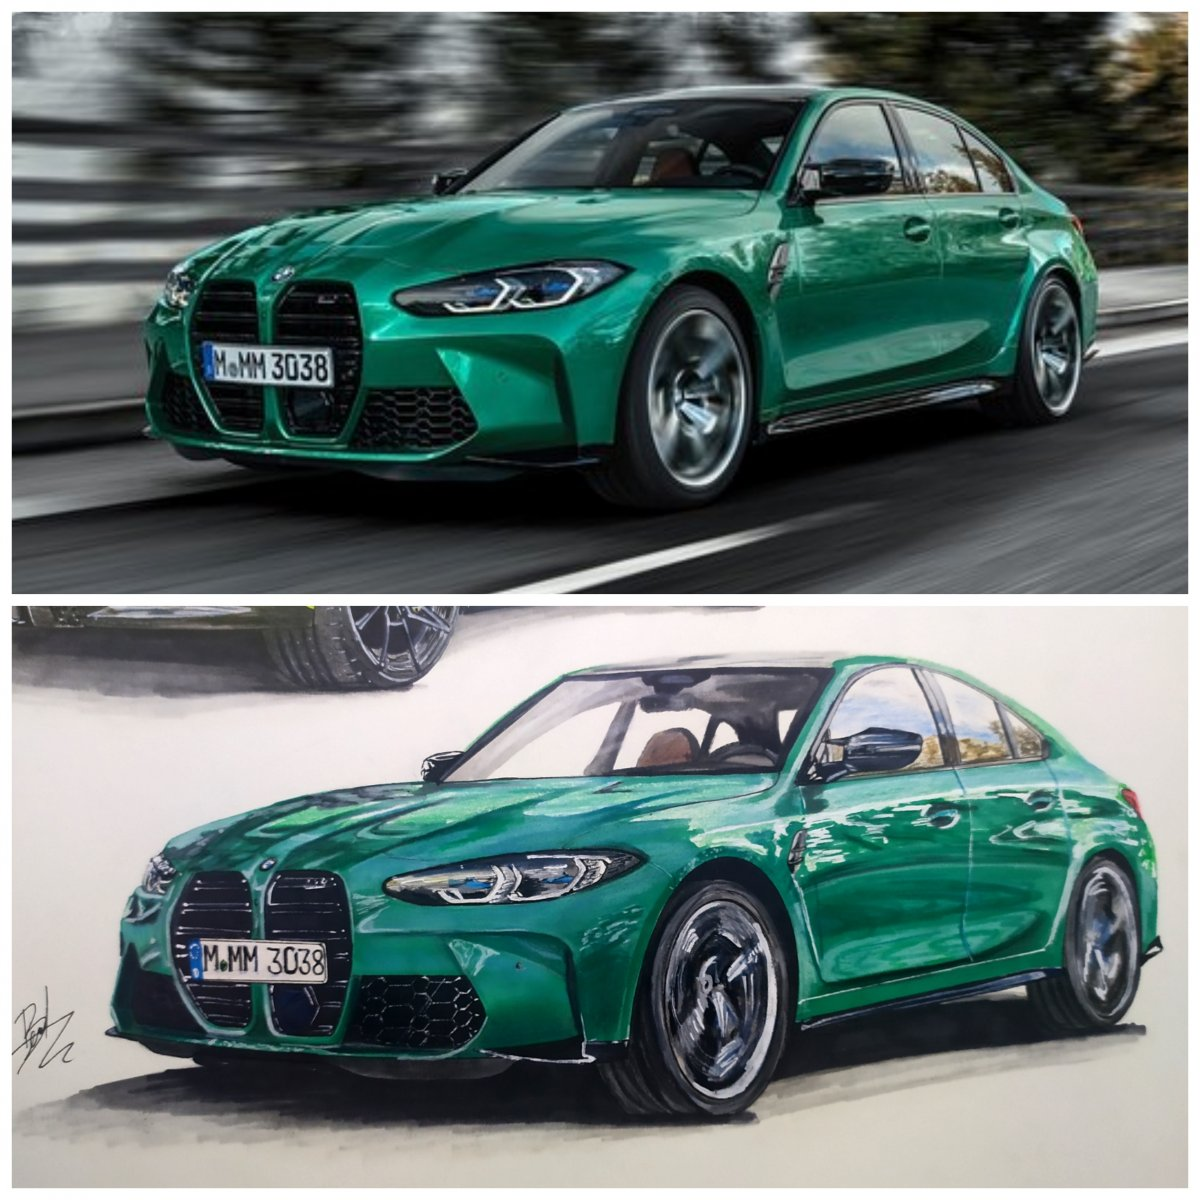 New Bmw M3 competition